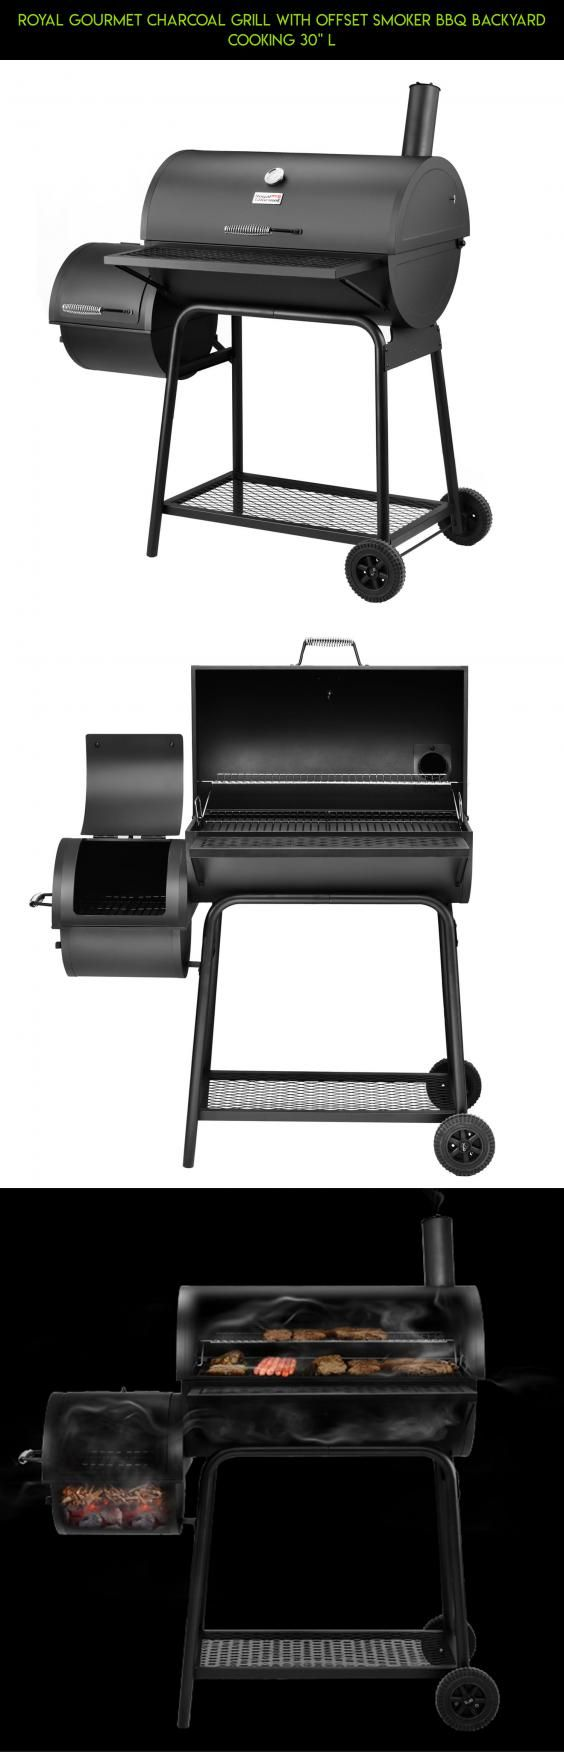 reverse flow smoker plans further homemade bbq smokers plans on